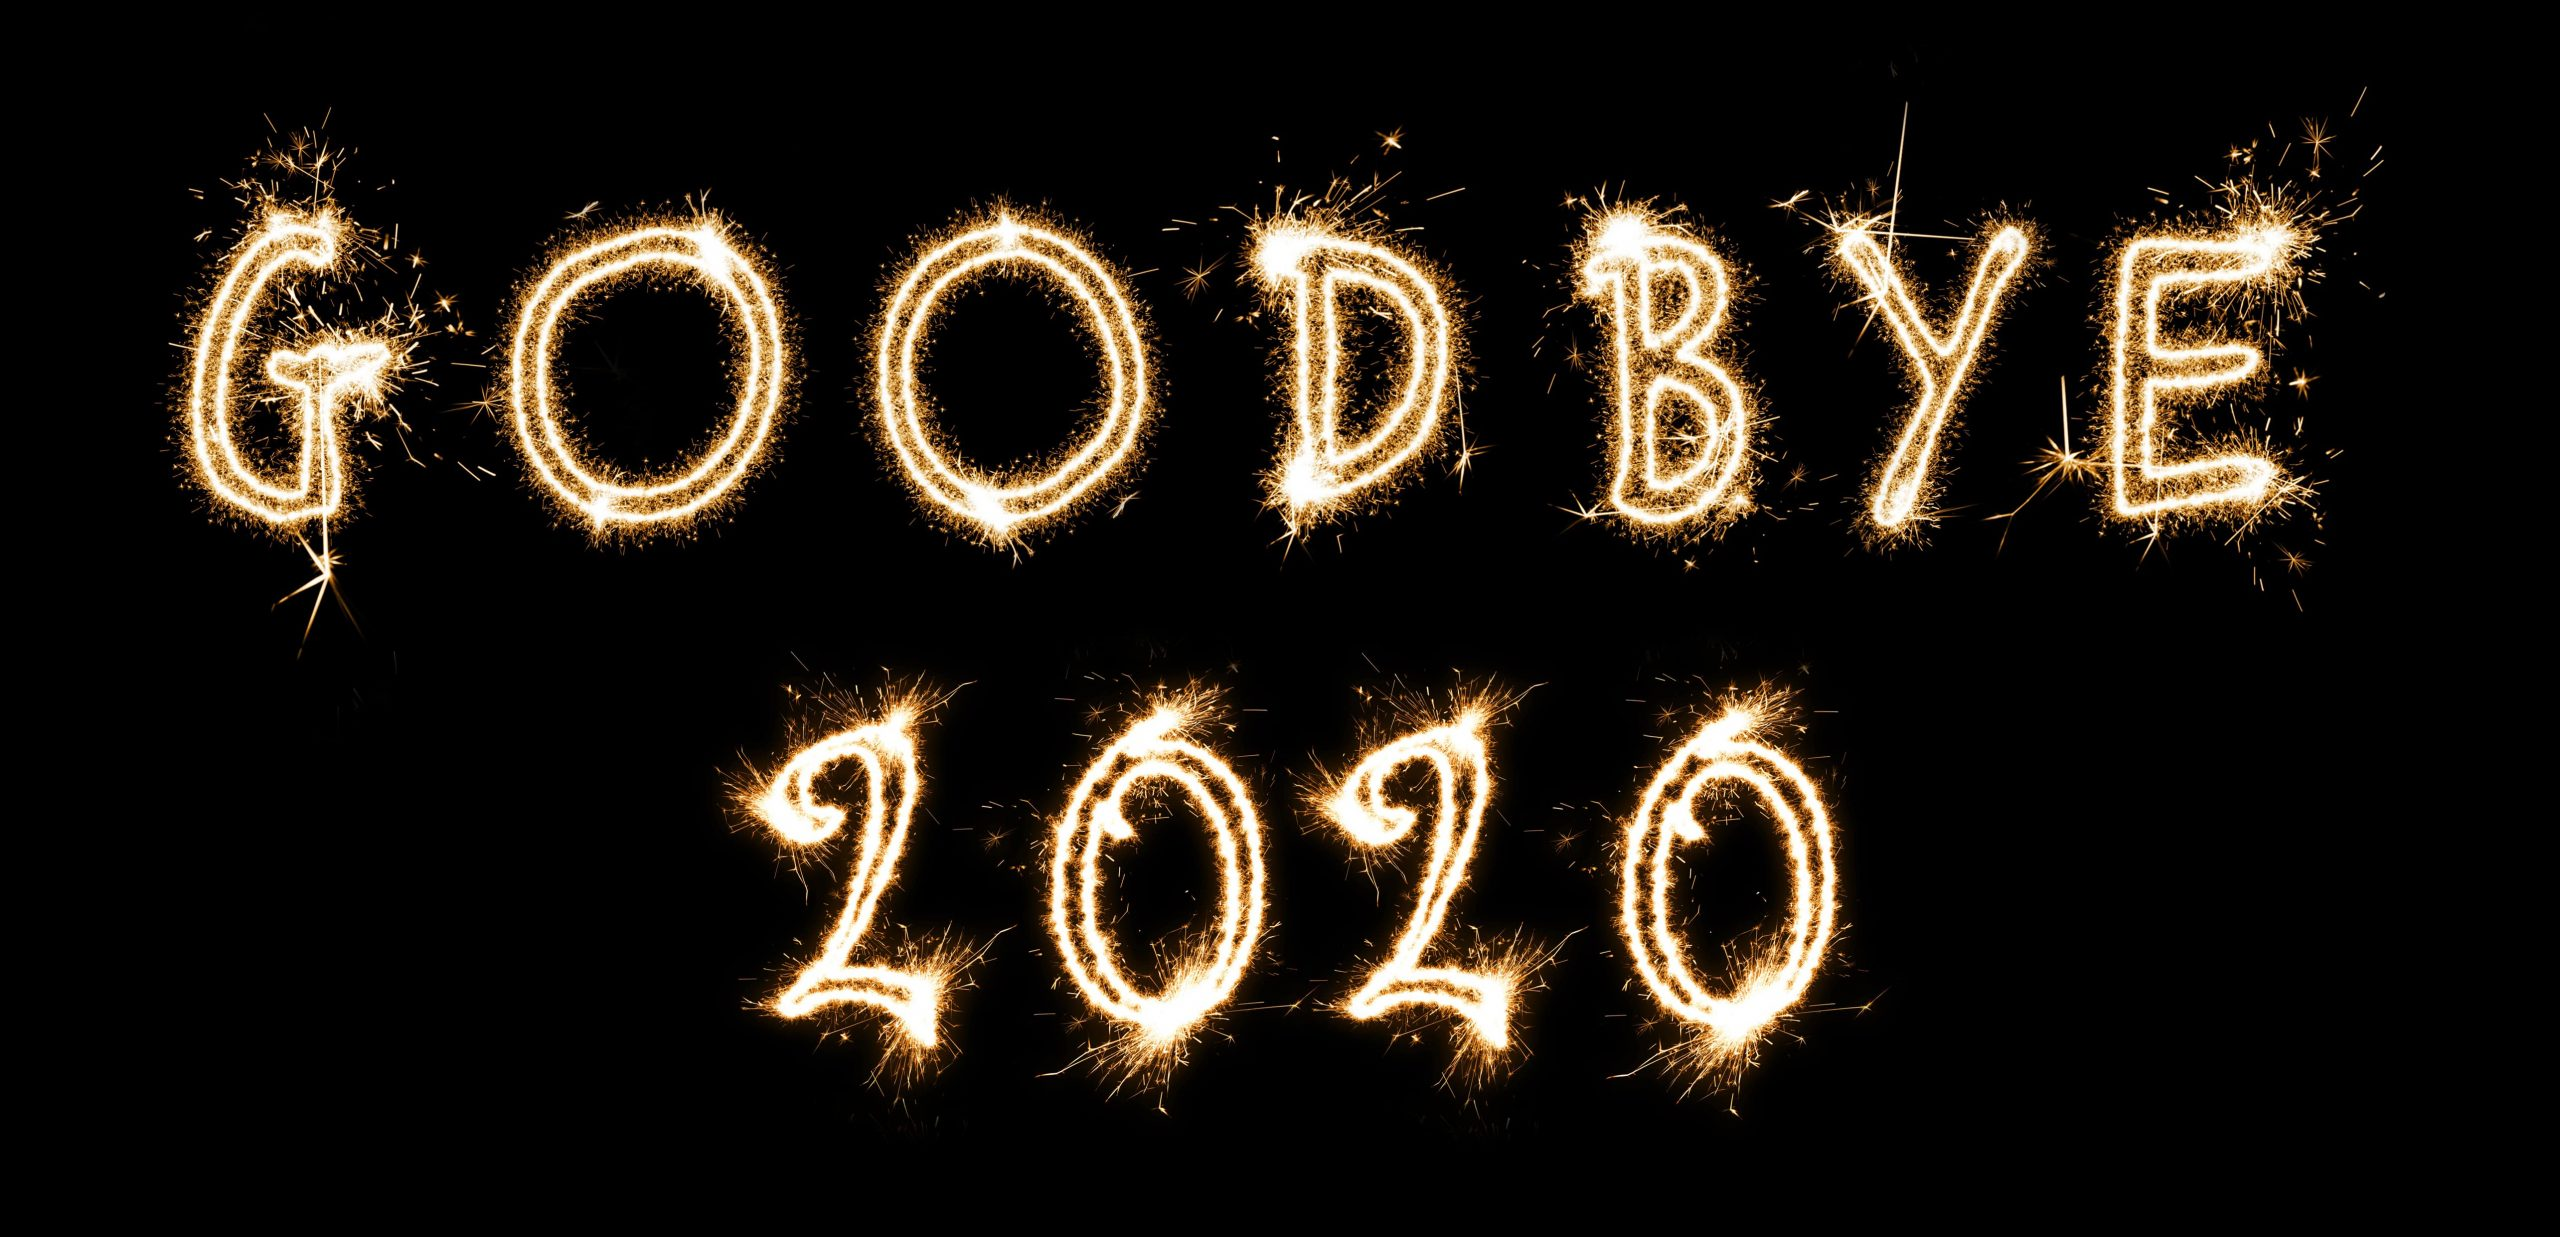 say goodbye to 2020